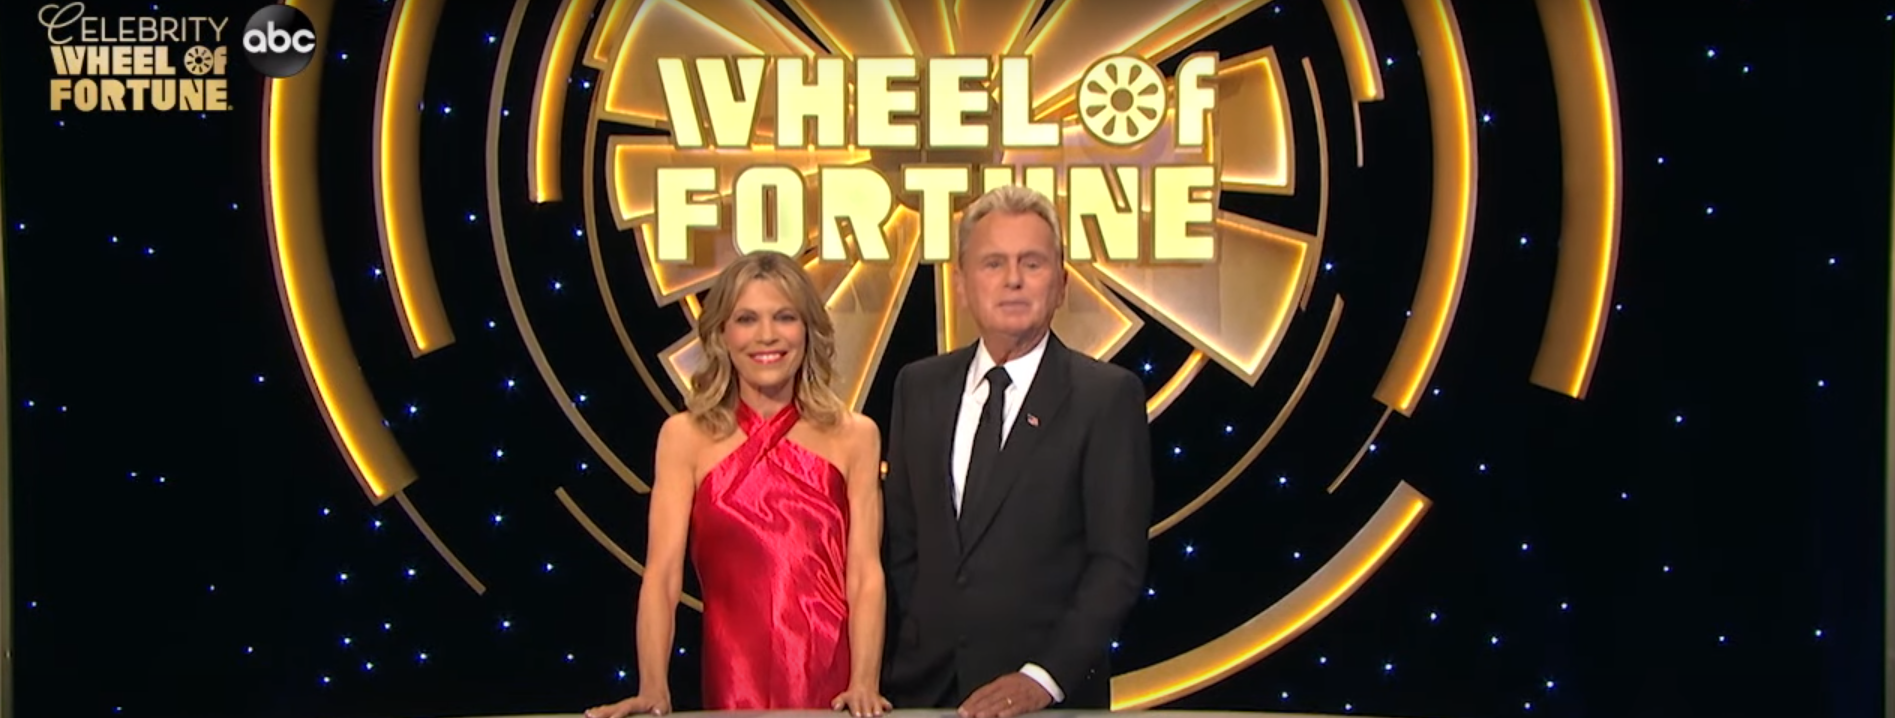 Celebrity Wheel Of Fortune Air Date And Contestants Revealed